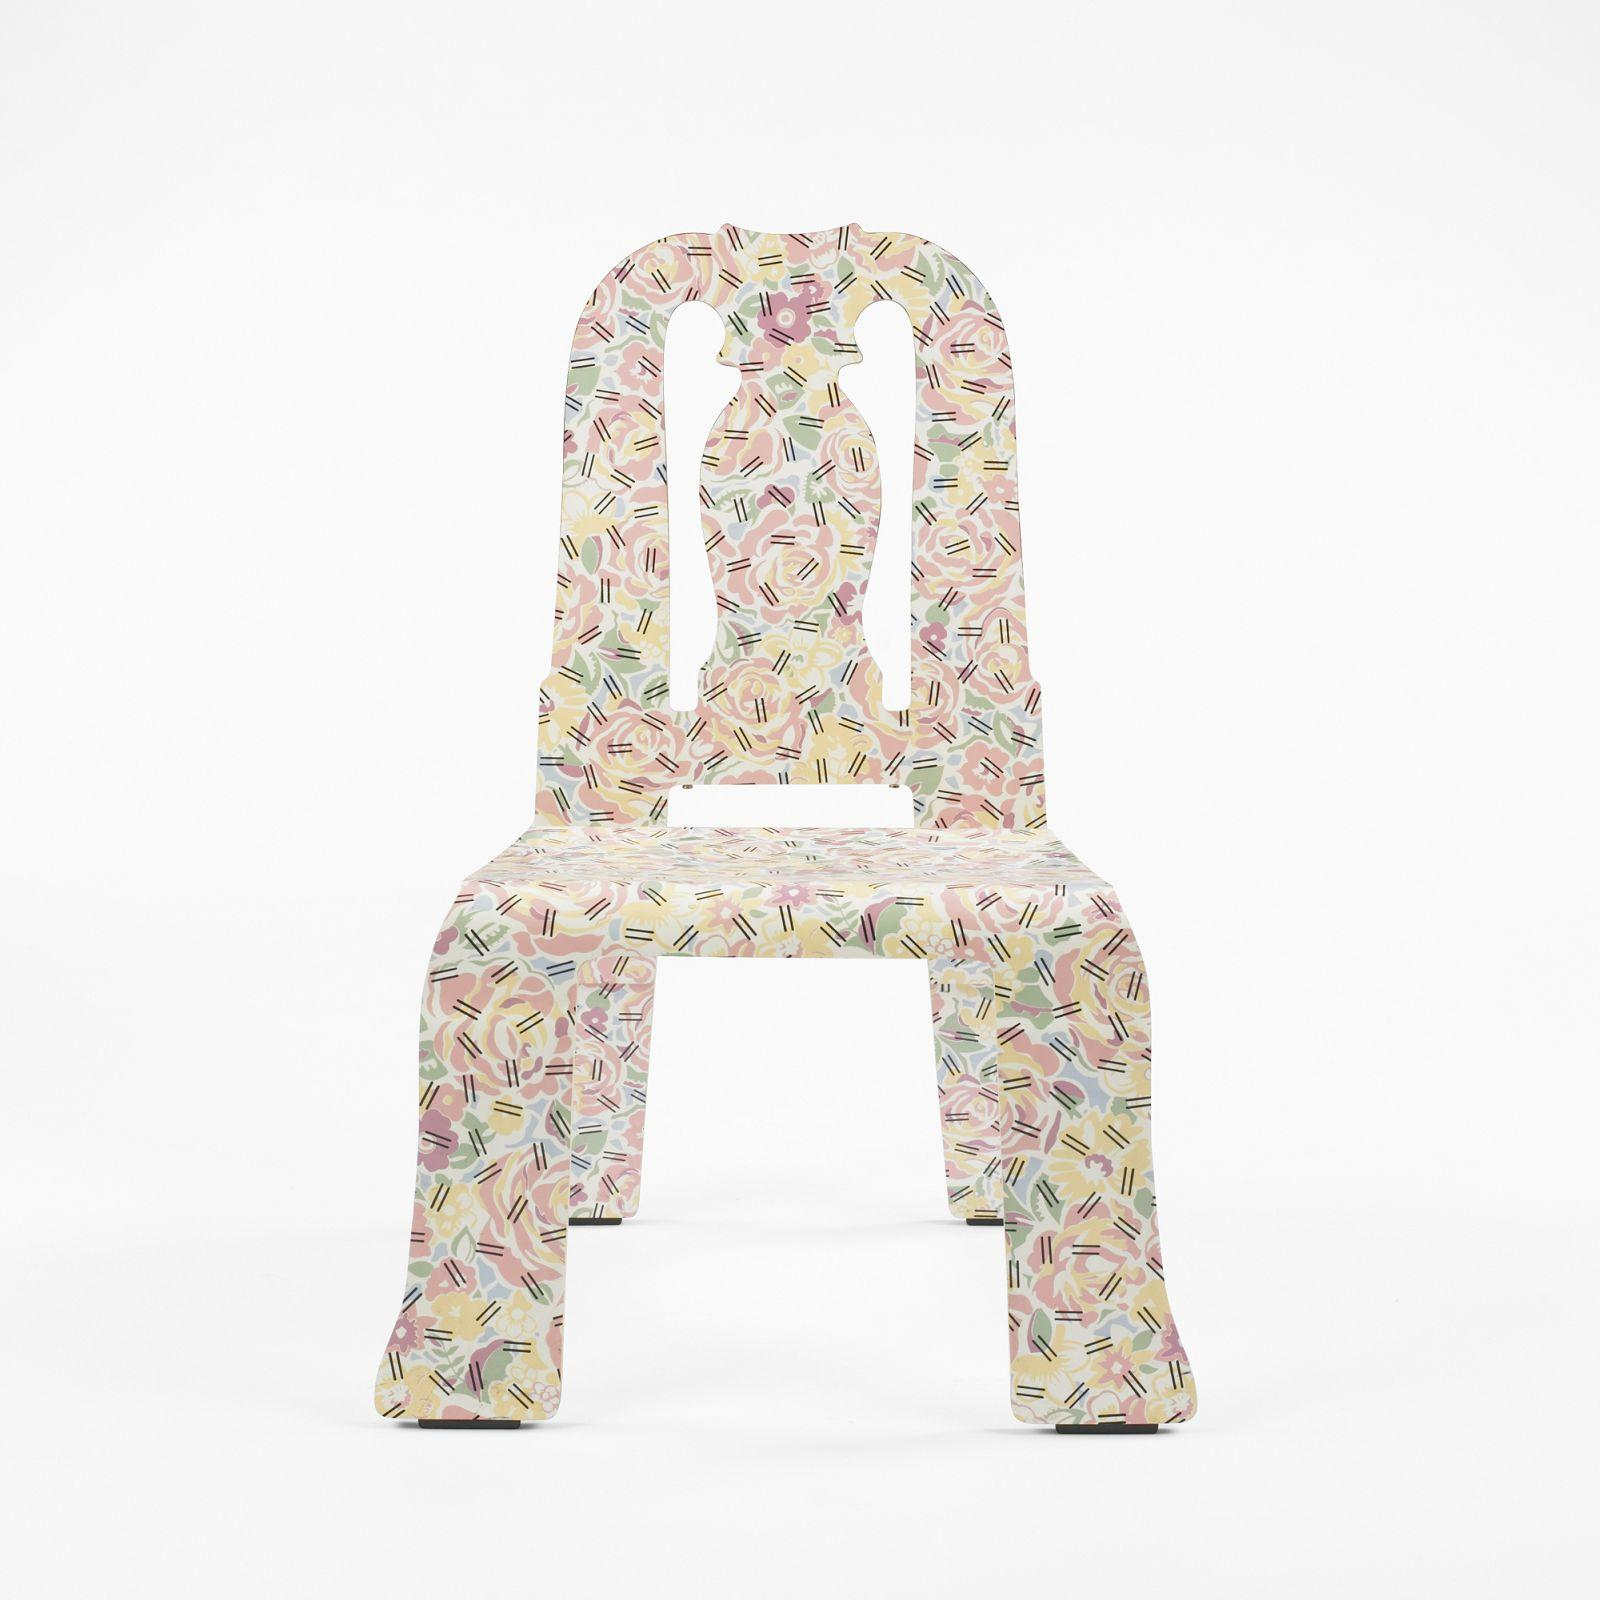 Robert Venturi Queen Anne chair